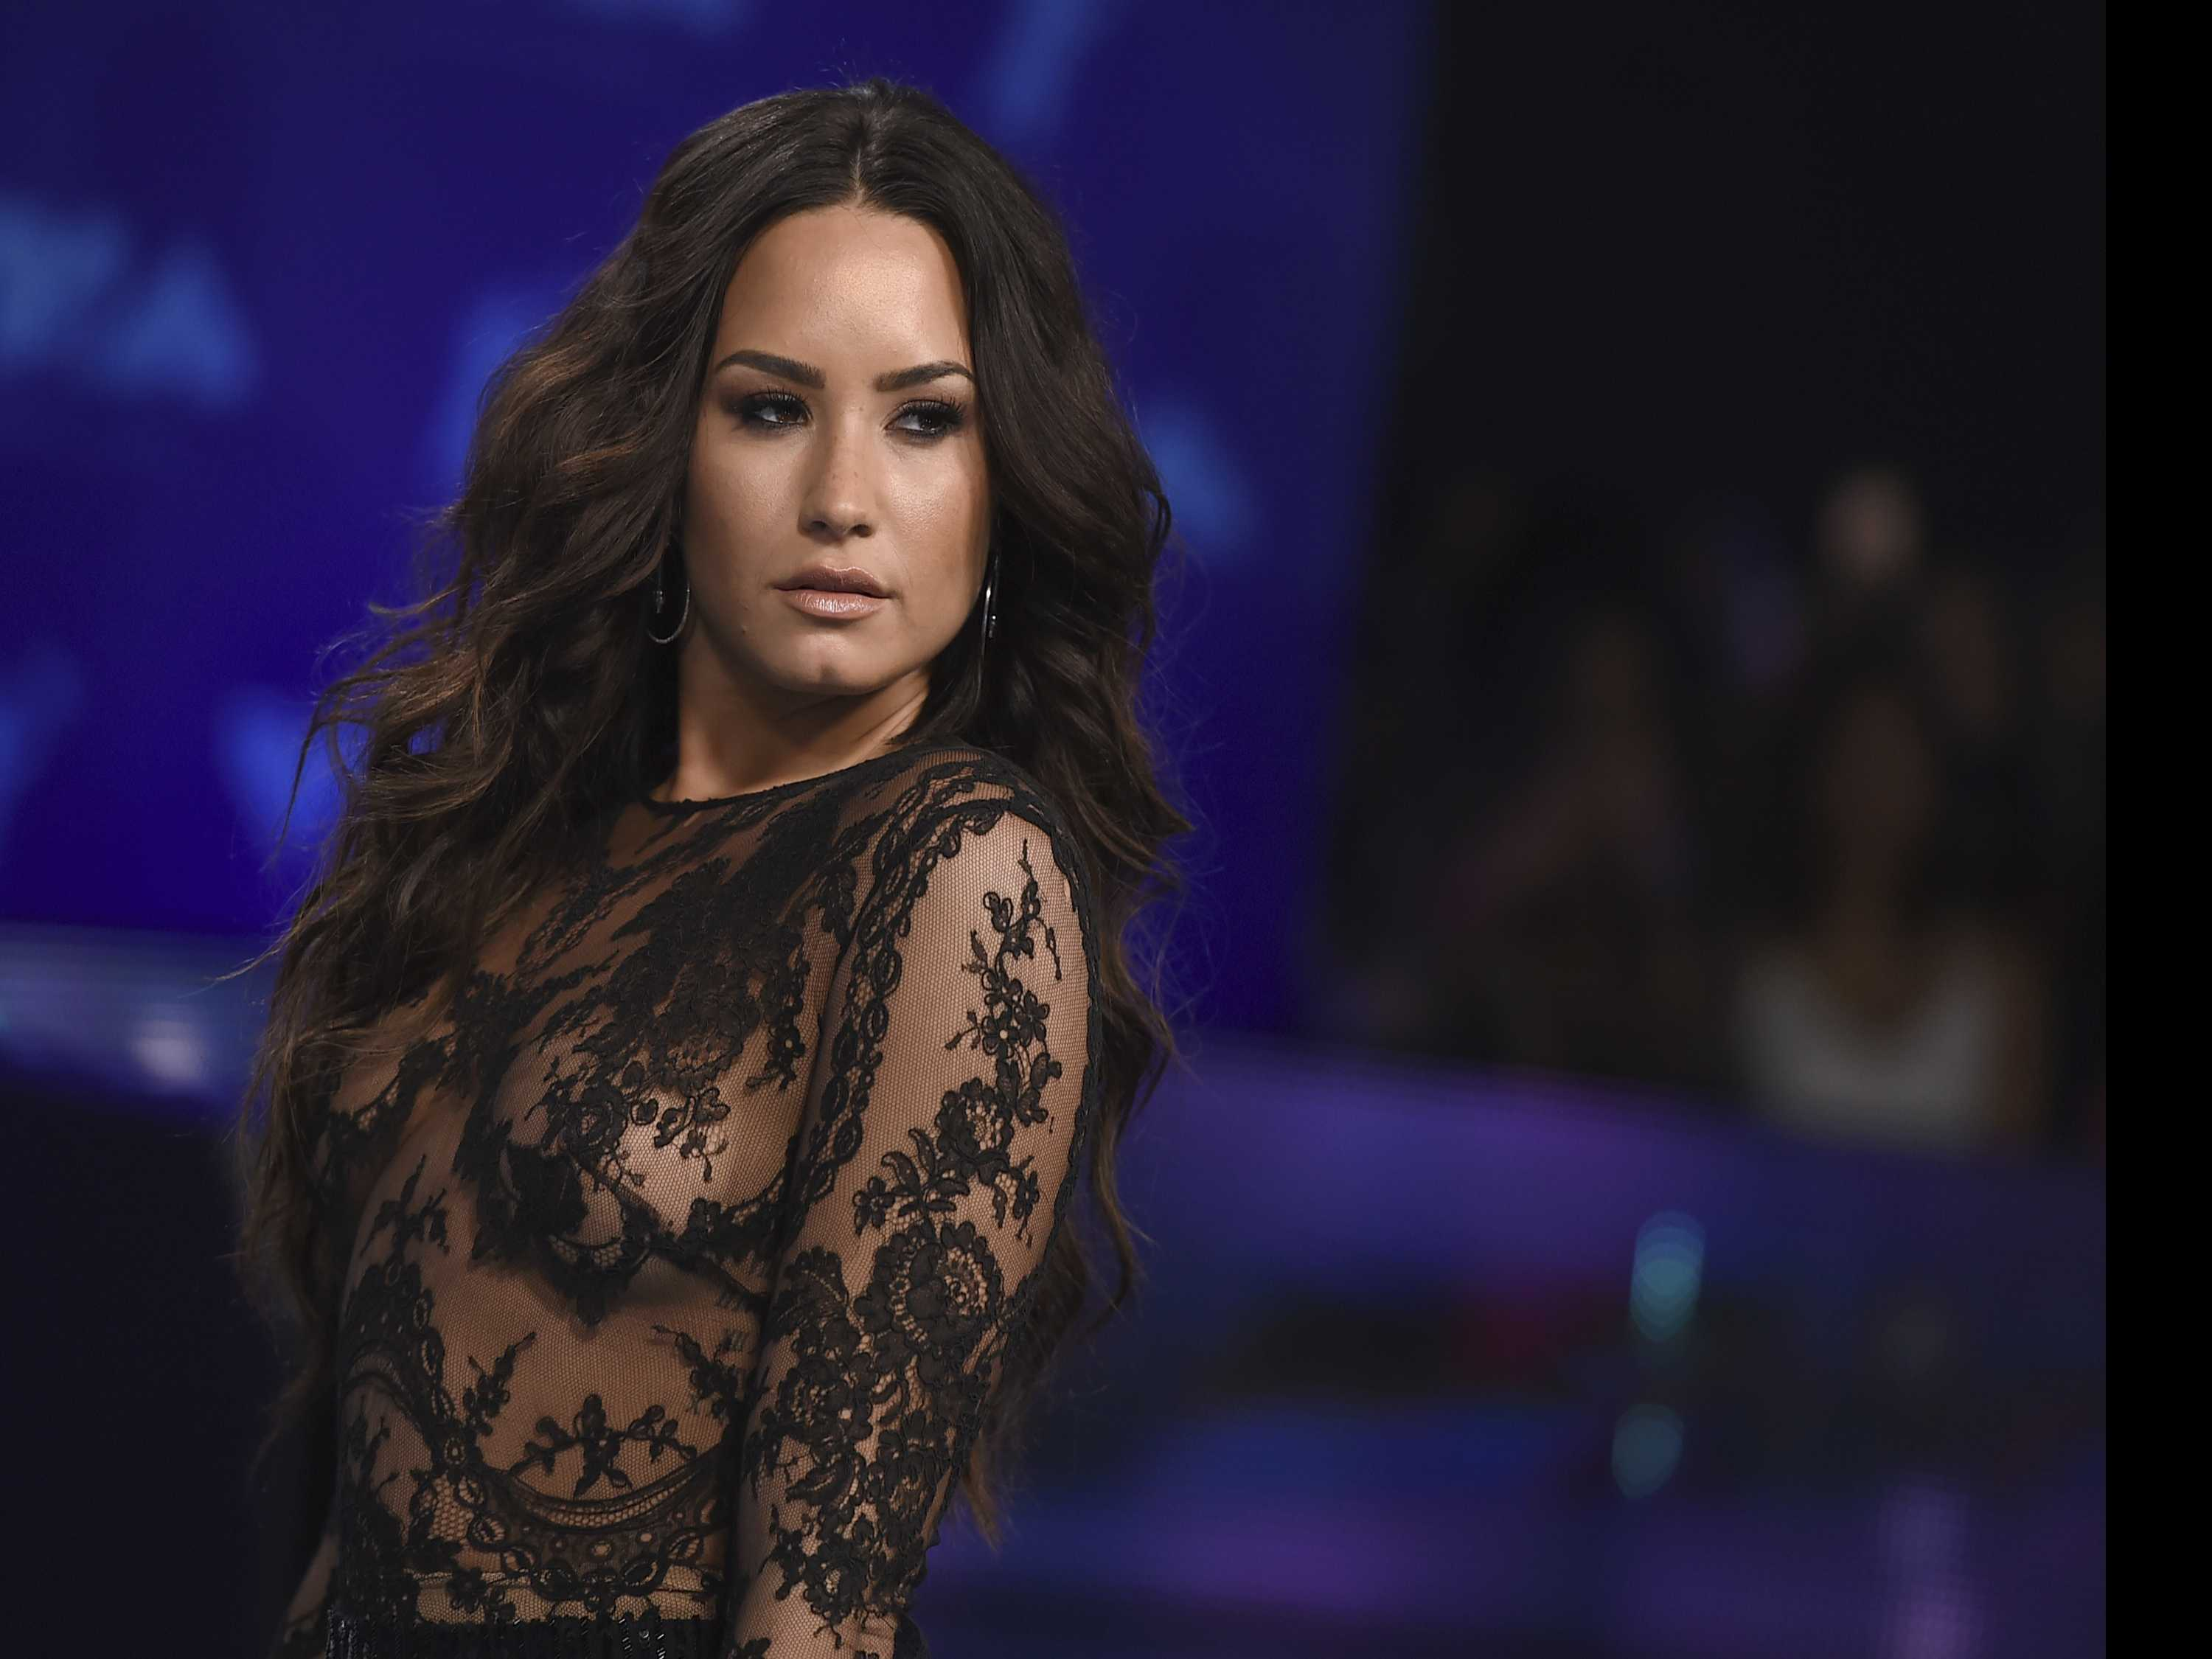 Demi Lovato to Help War-Scarred Children in Iraq